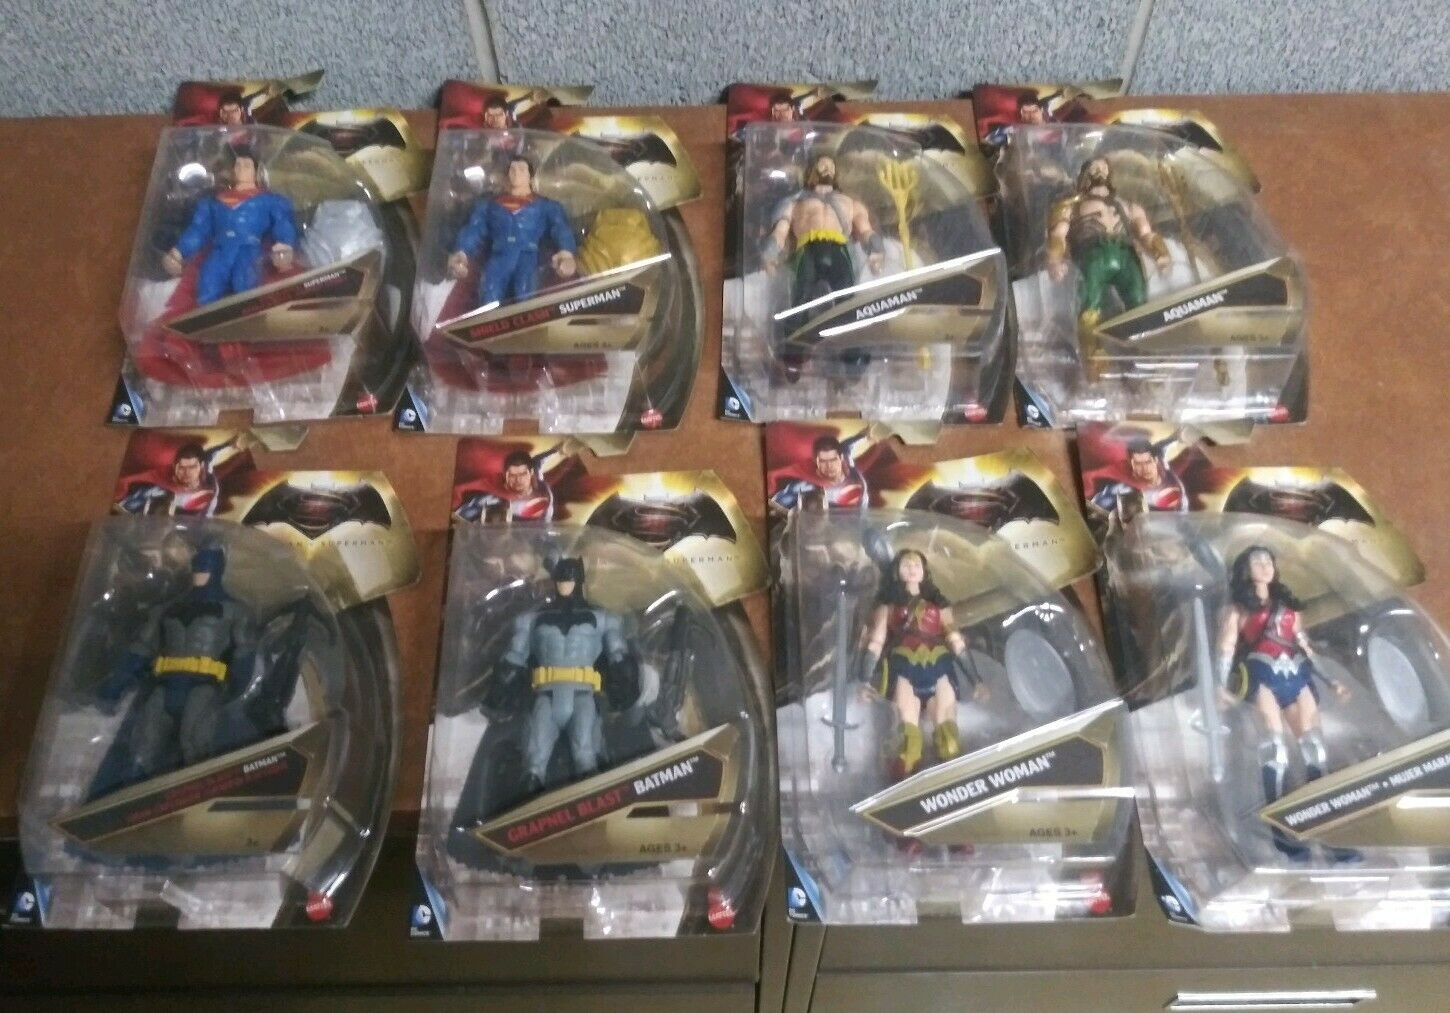 Batman V Superman 6  Figure Lot (8) avec variantes-Superman Batman Wonder Aquaman